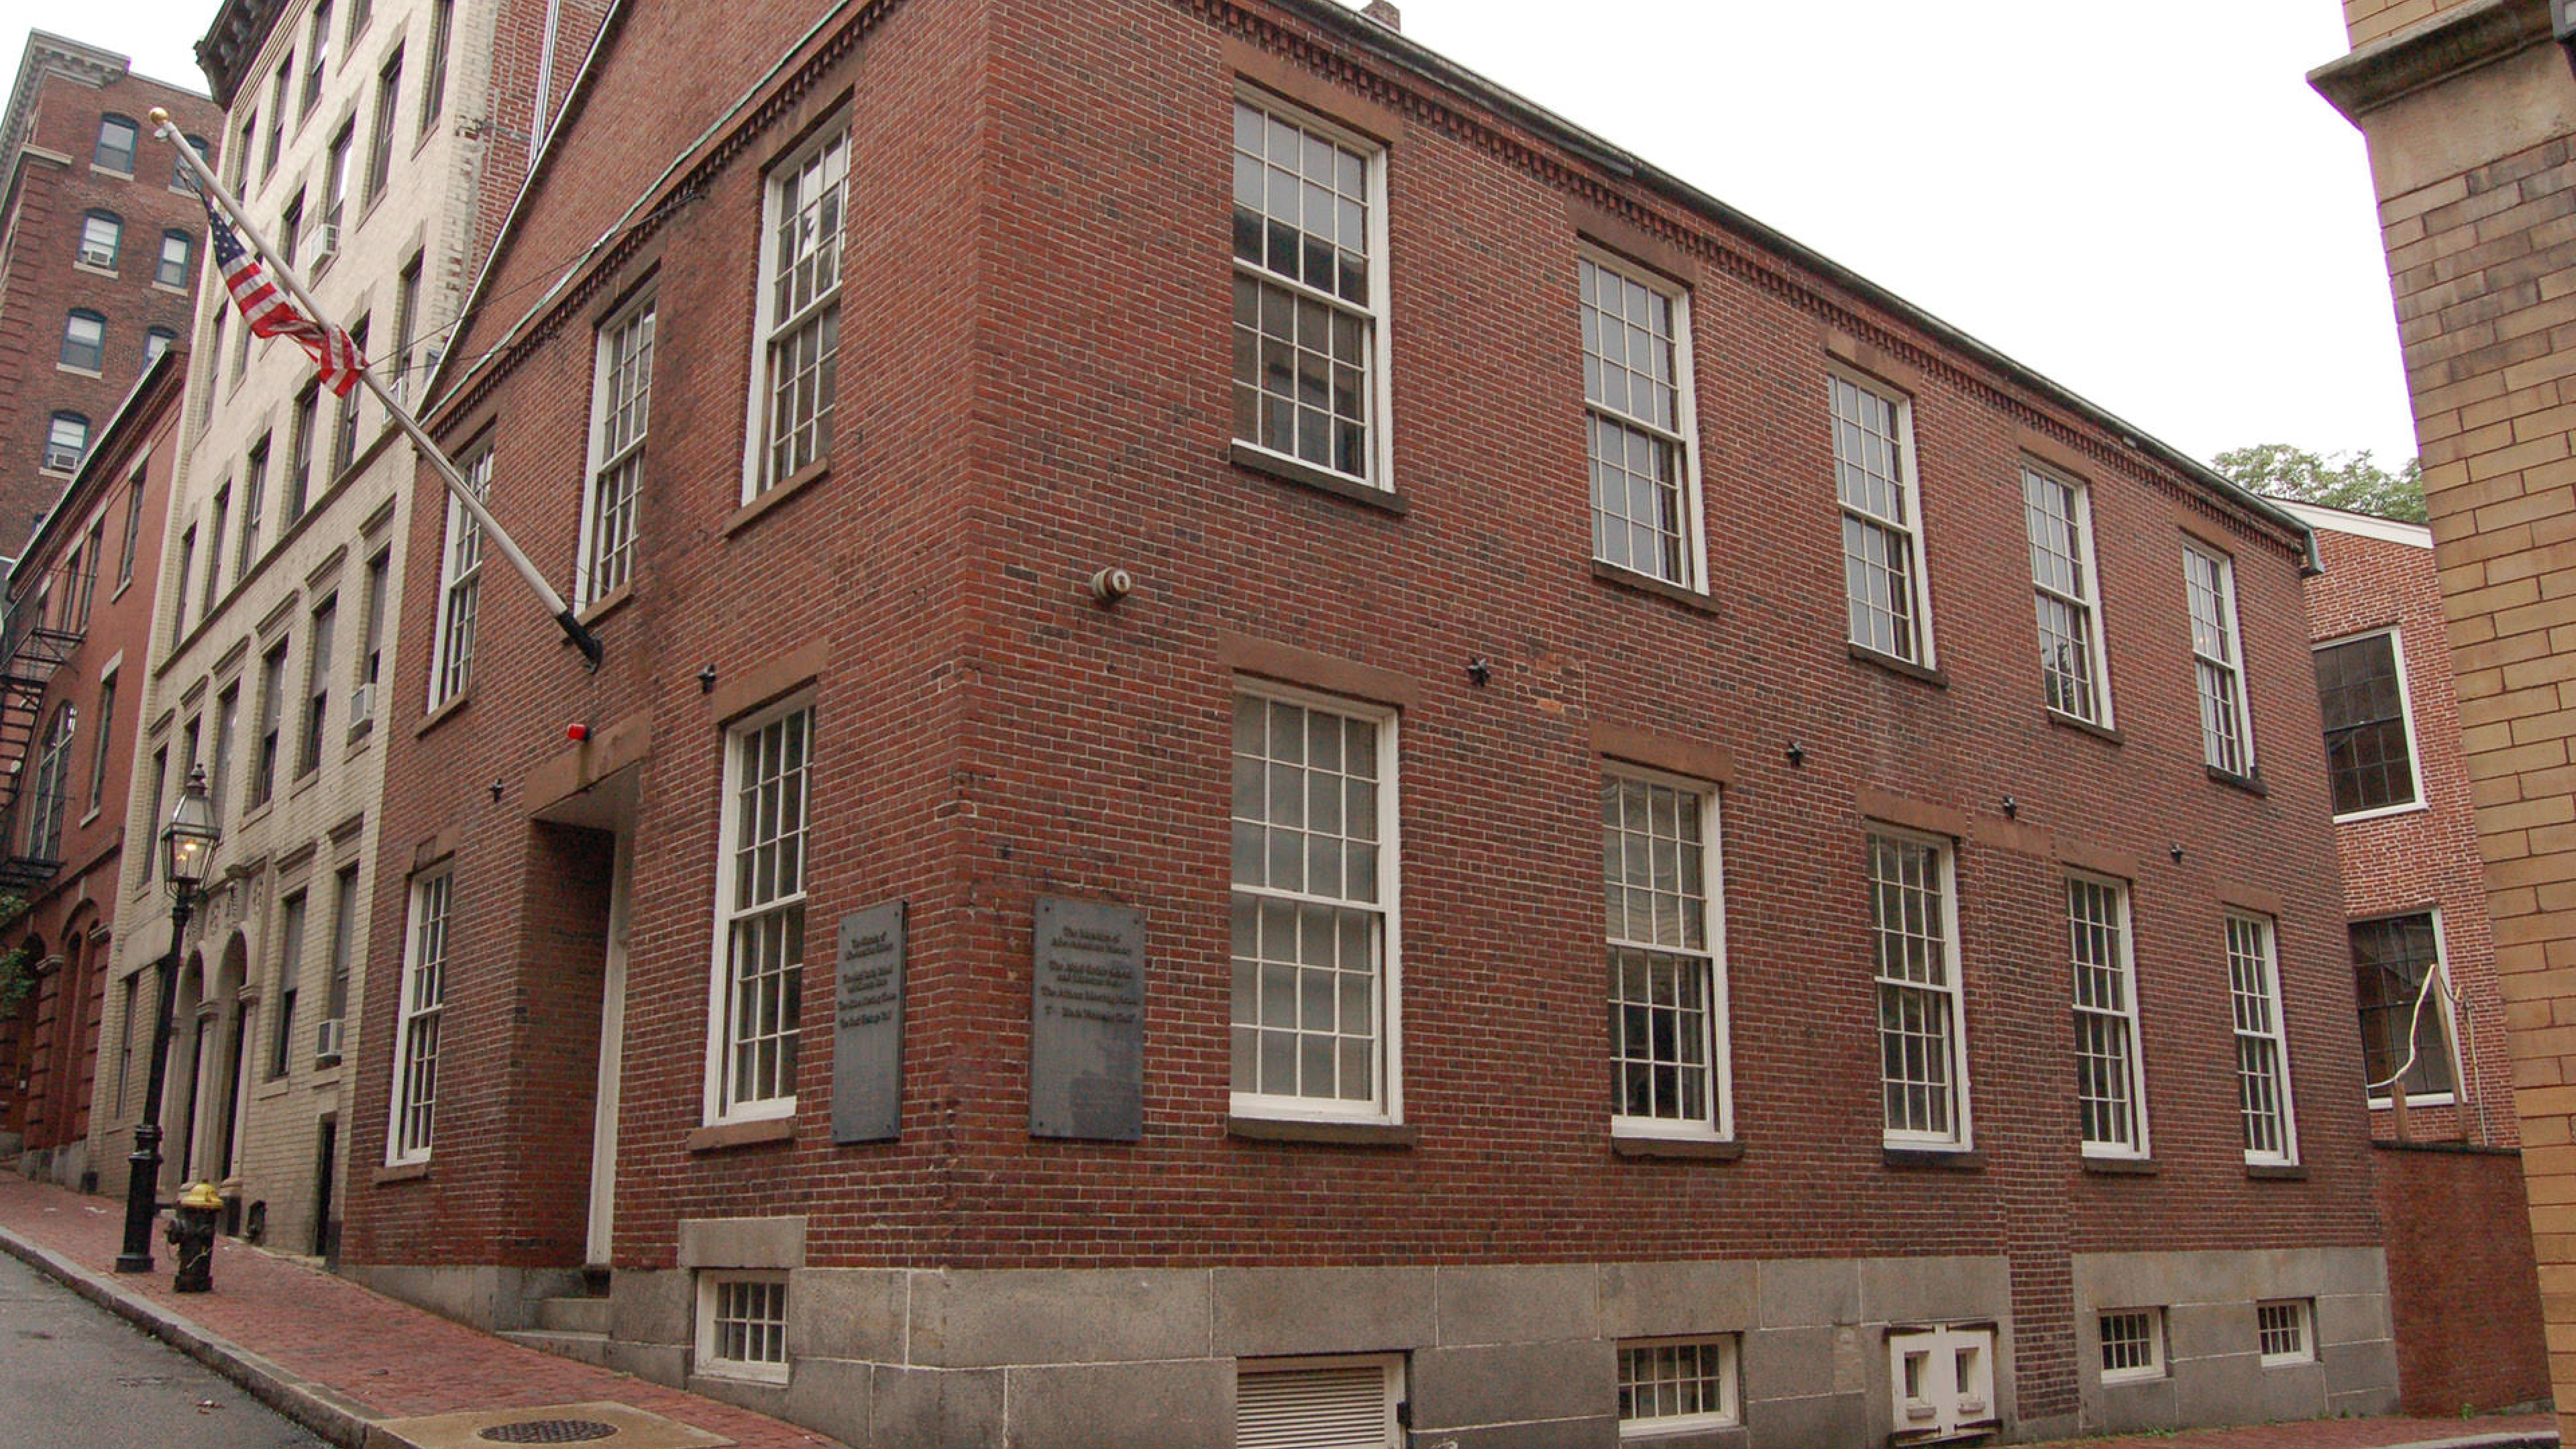 Abel Smith School at the Boston African American National Historic Site